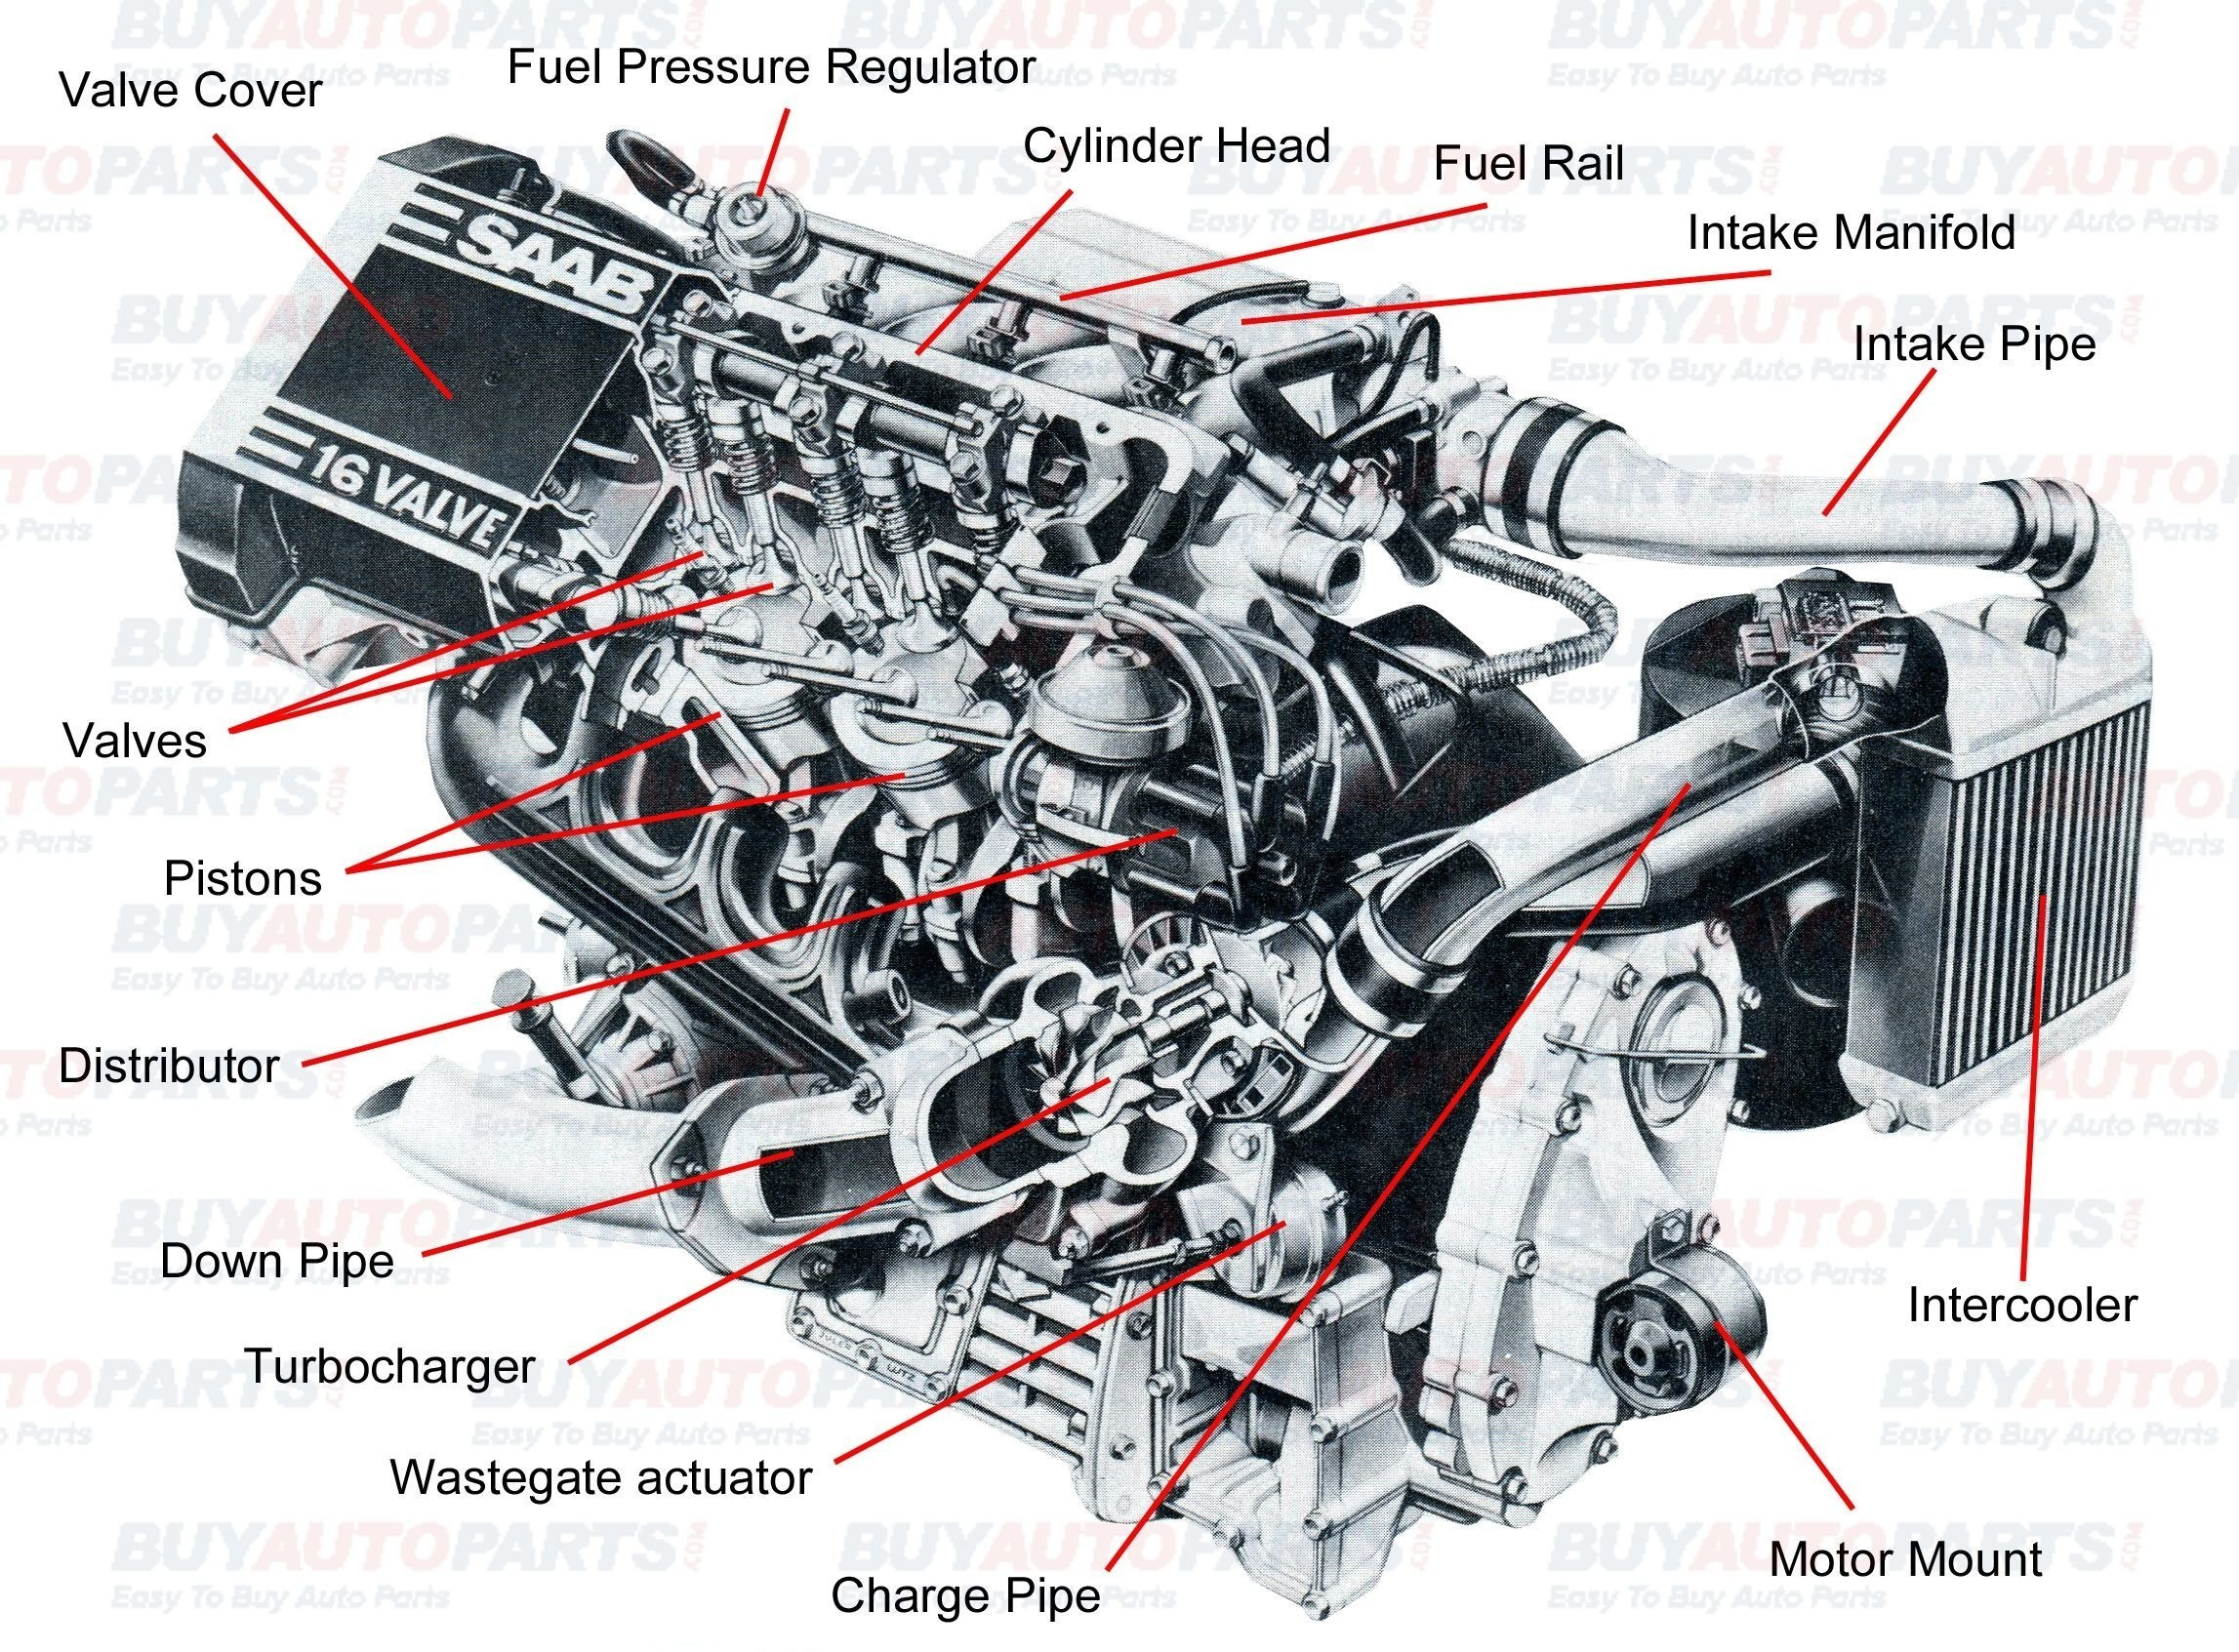 Under the Car Hood Diagram Parts Engine Diagram Diagram Parts Under A Car Diagram Car Engine Of Under the Car Hood Diagram